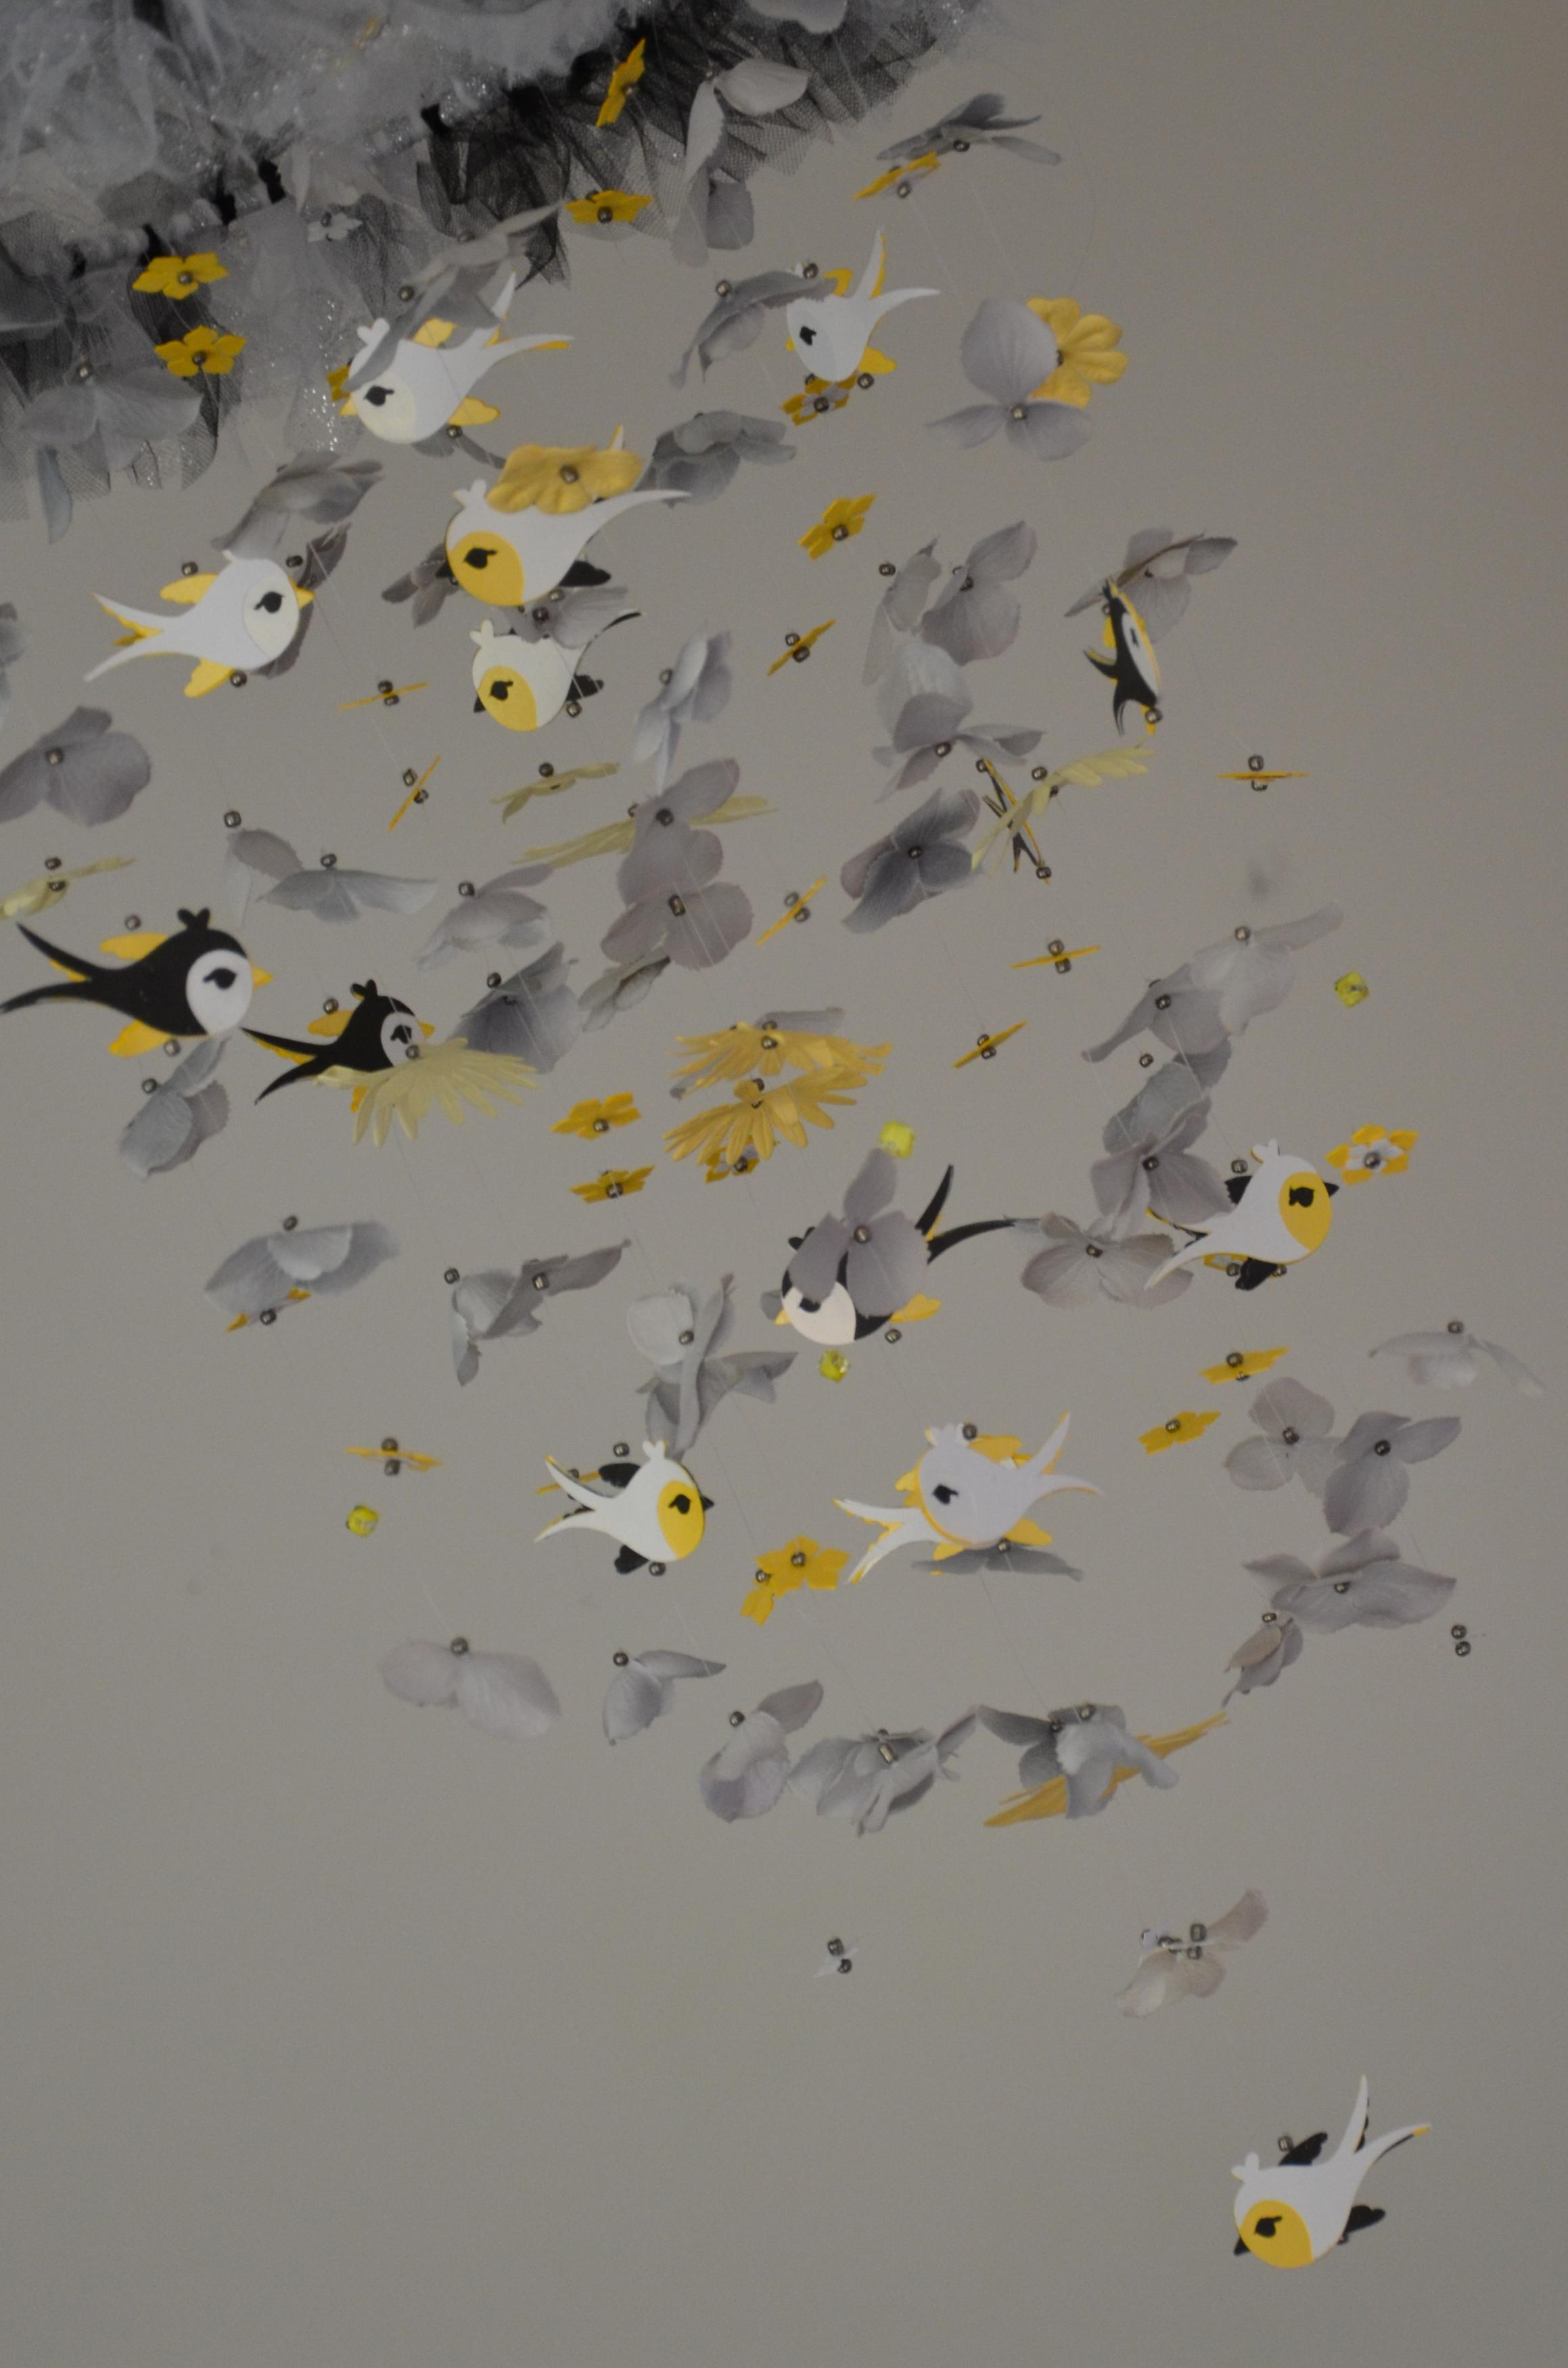 Whimsical Bird Nursery Mobile Yellow Gray Black White Decor Baby Shower Gift Chandelier